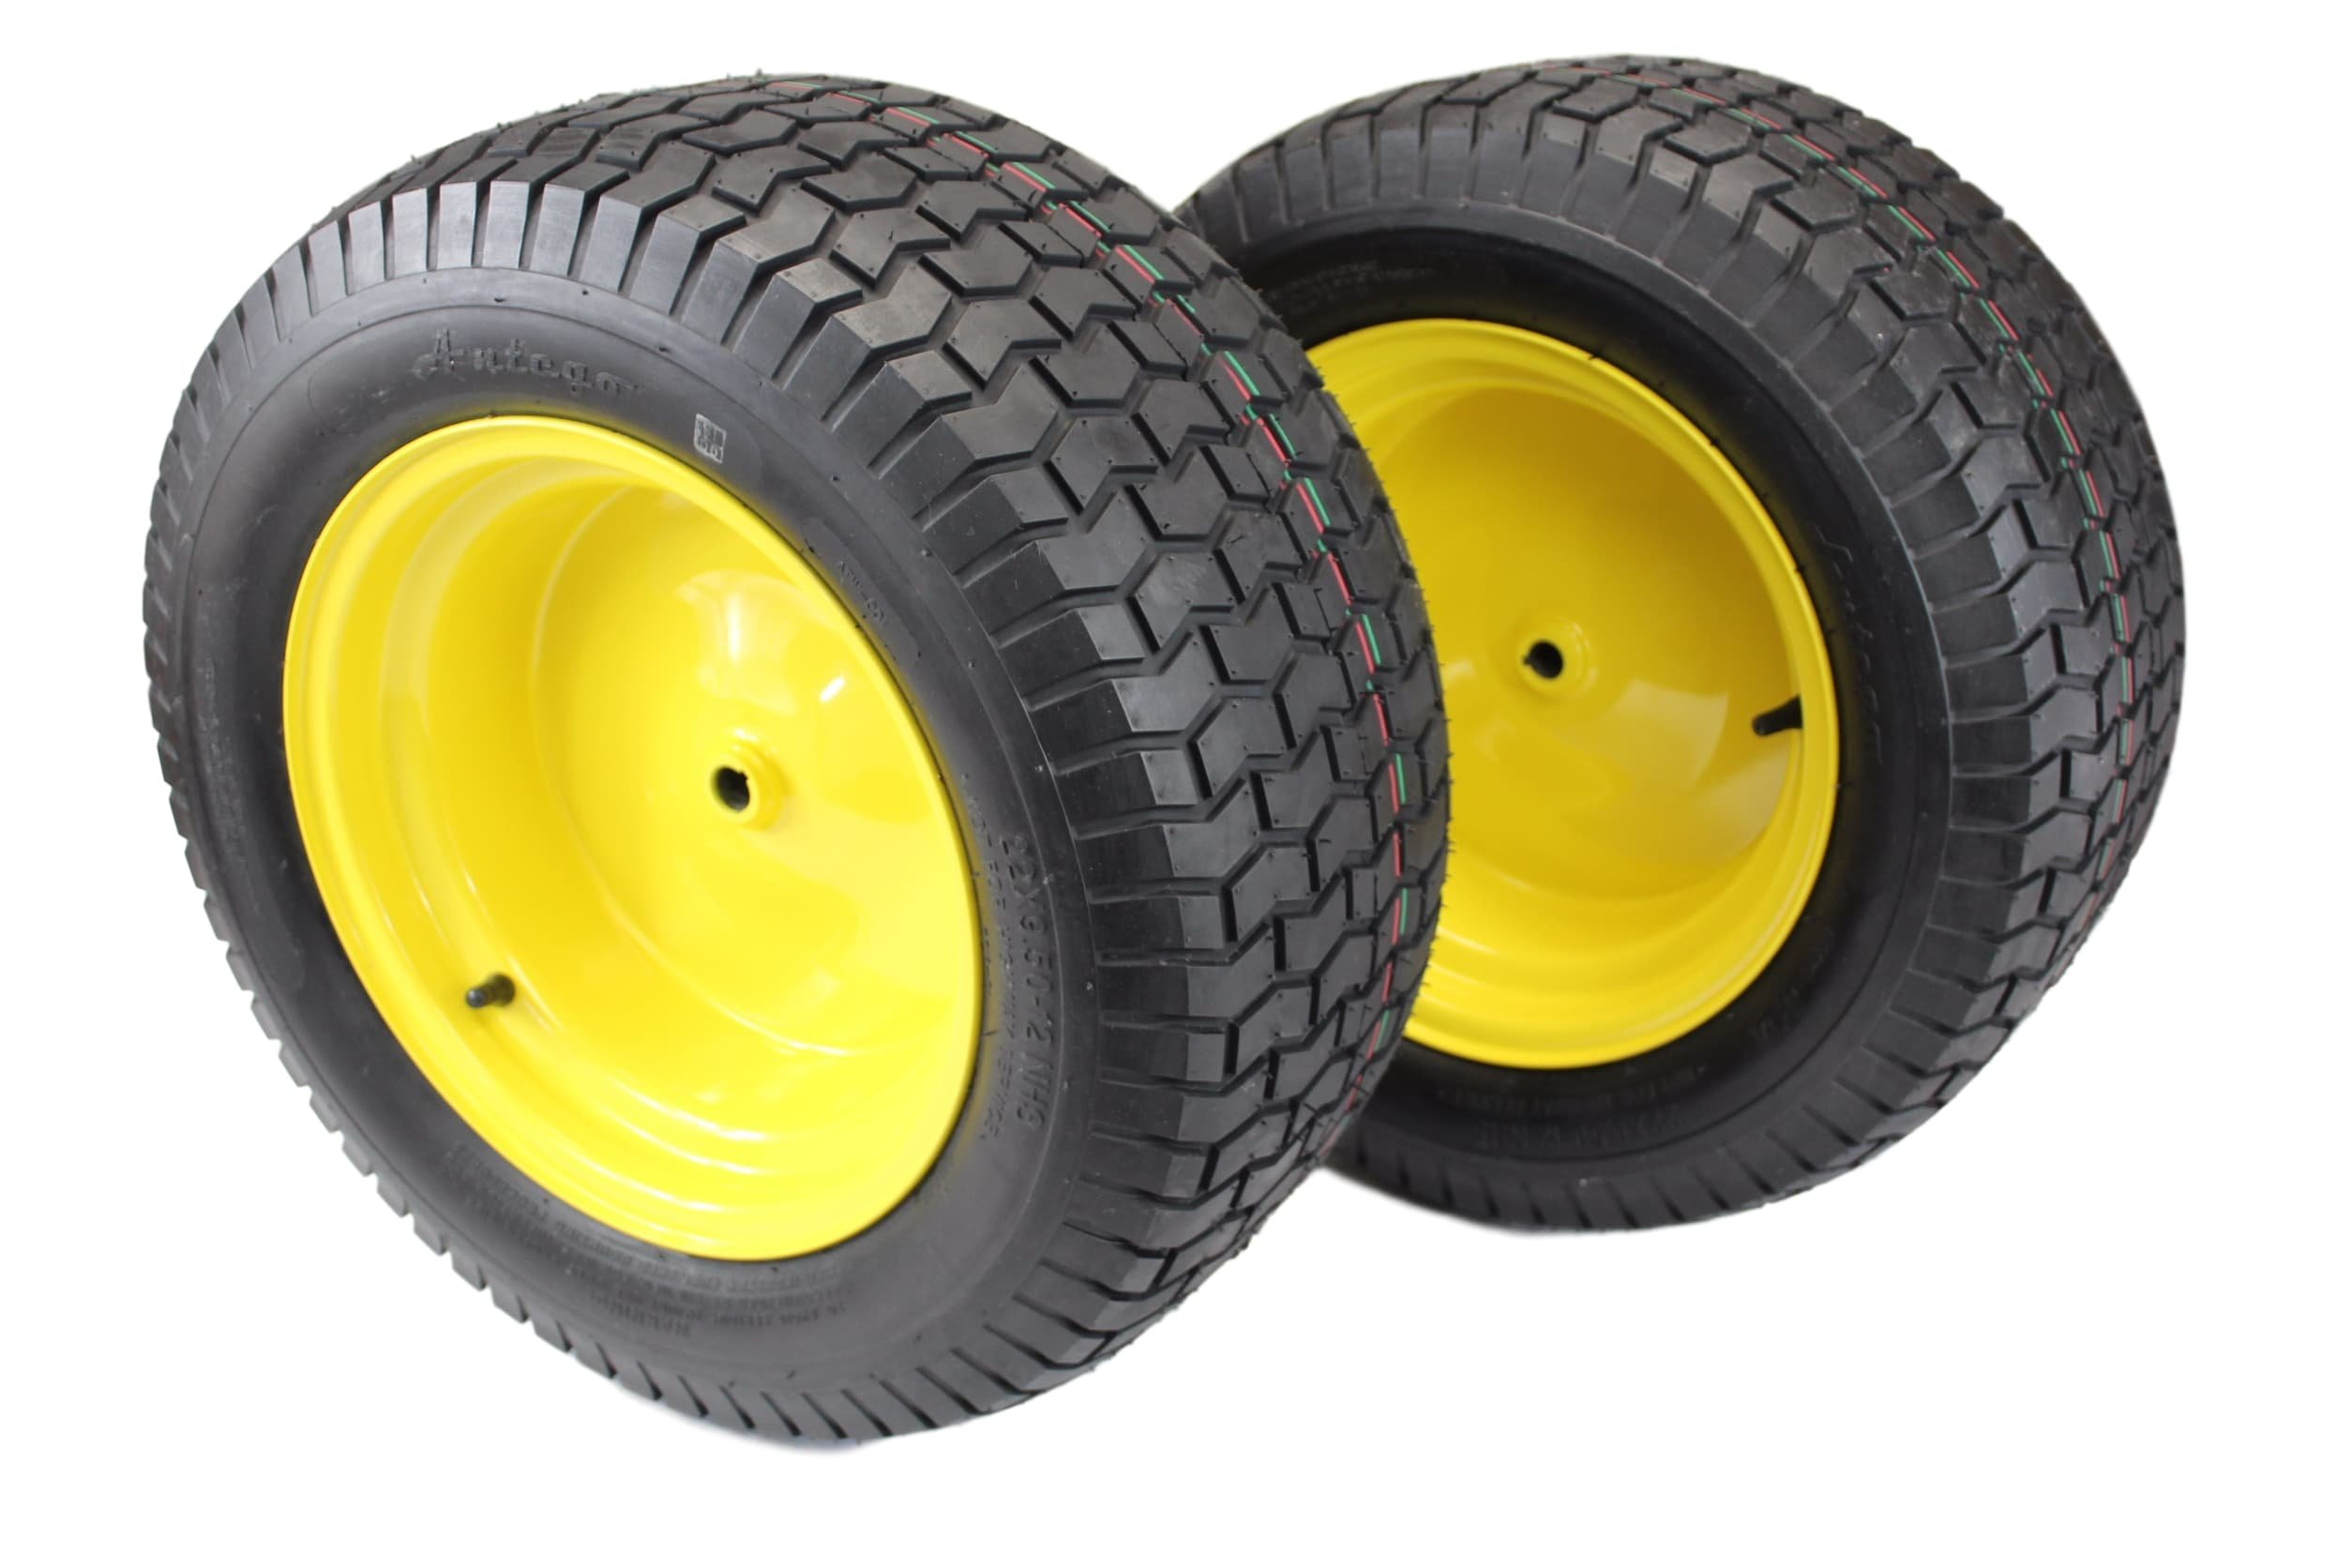 Antego (Set of 2) 22x9.50-12 Tires & Wheels 4 Ply for Lawn & Garden Mower Turf Tires